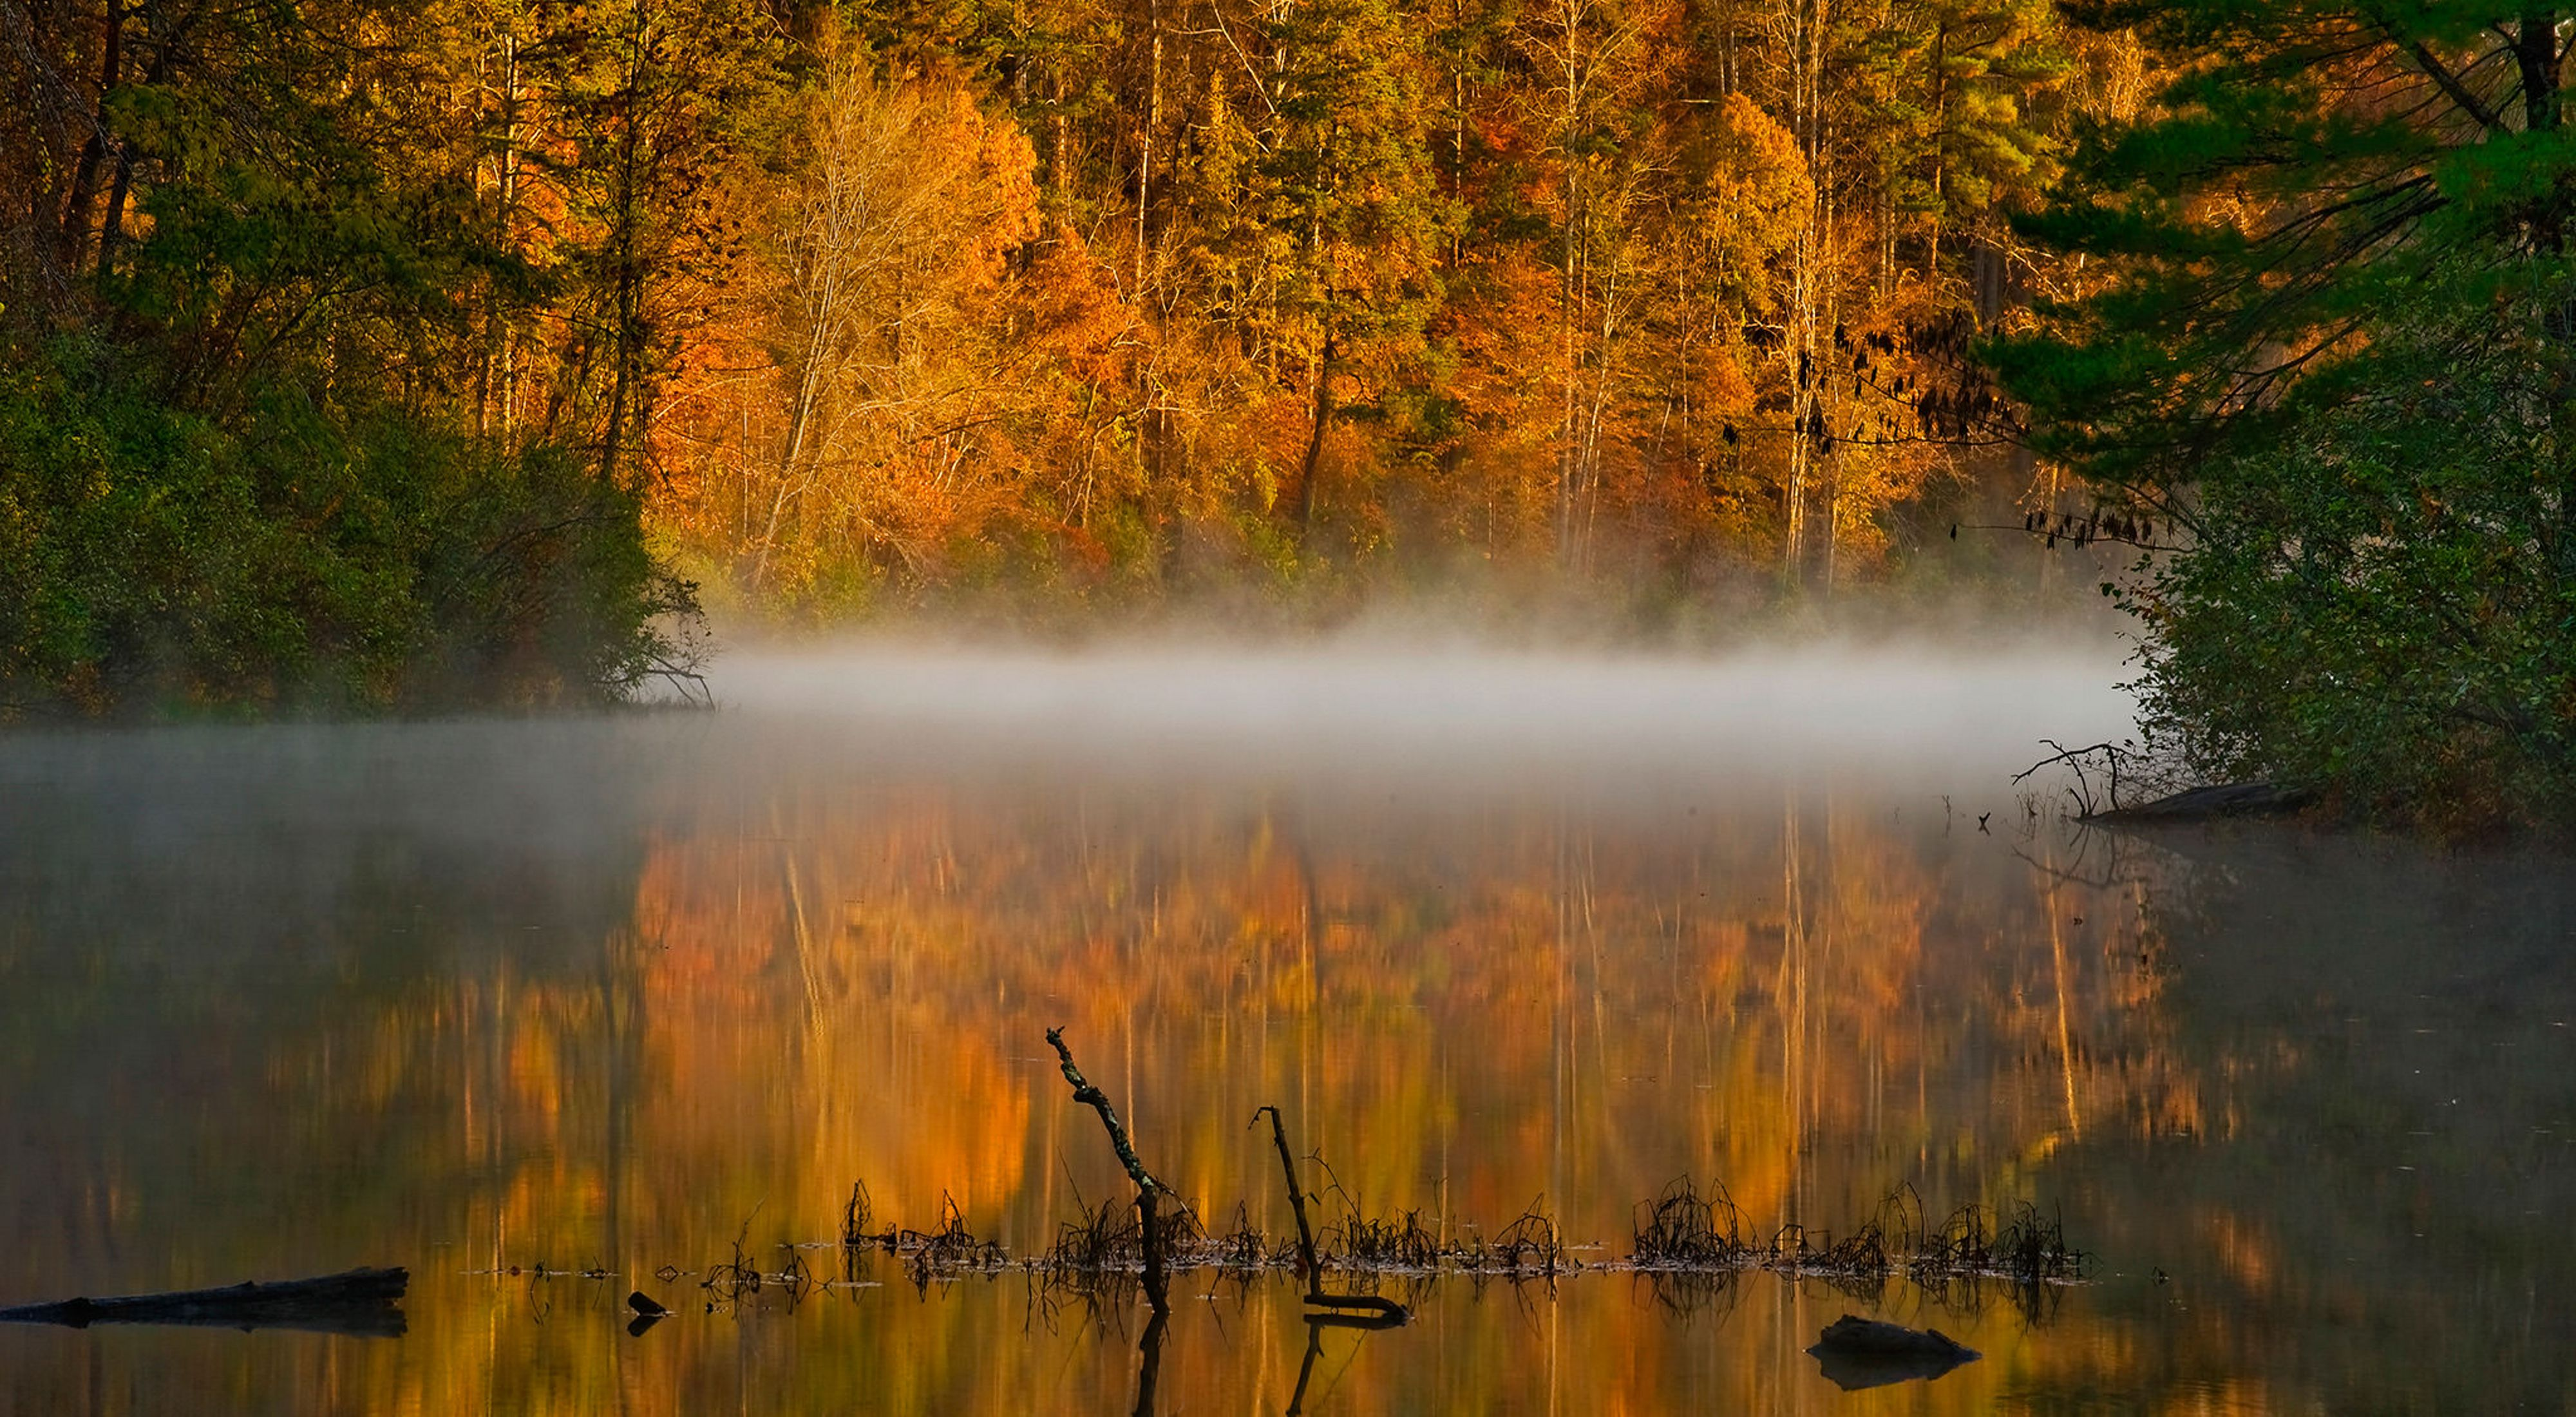 White mist rises over the still water of Virginia's Ivy Creek. The creek banks are lined with tall trees with leaves of gold and orange that are reflected back in the surface of the water.